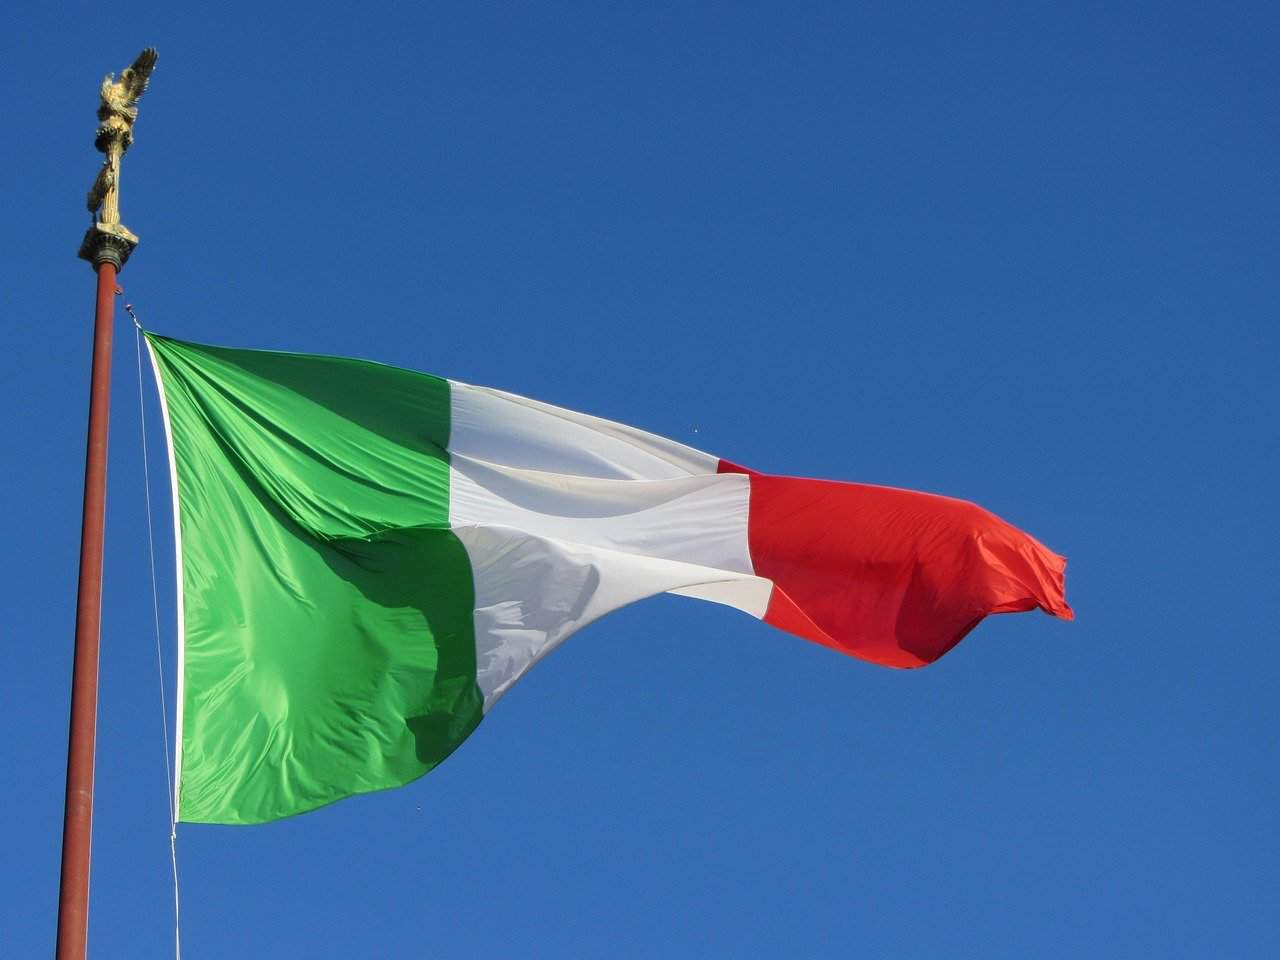 Italy to become Hungary's third largest business partner